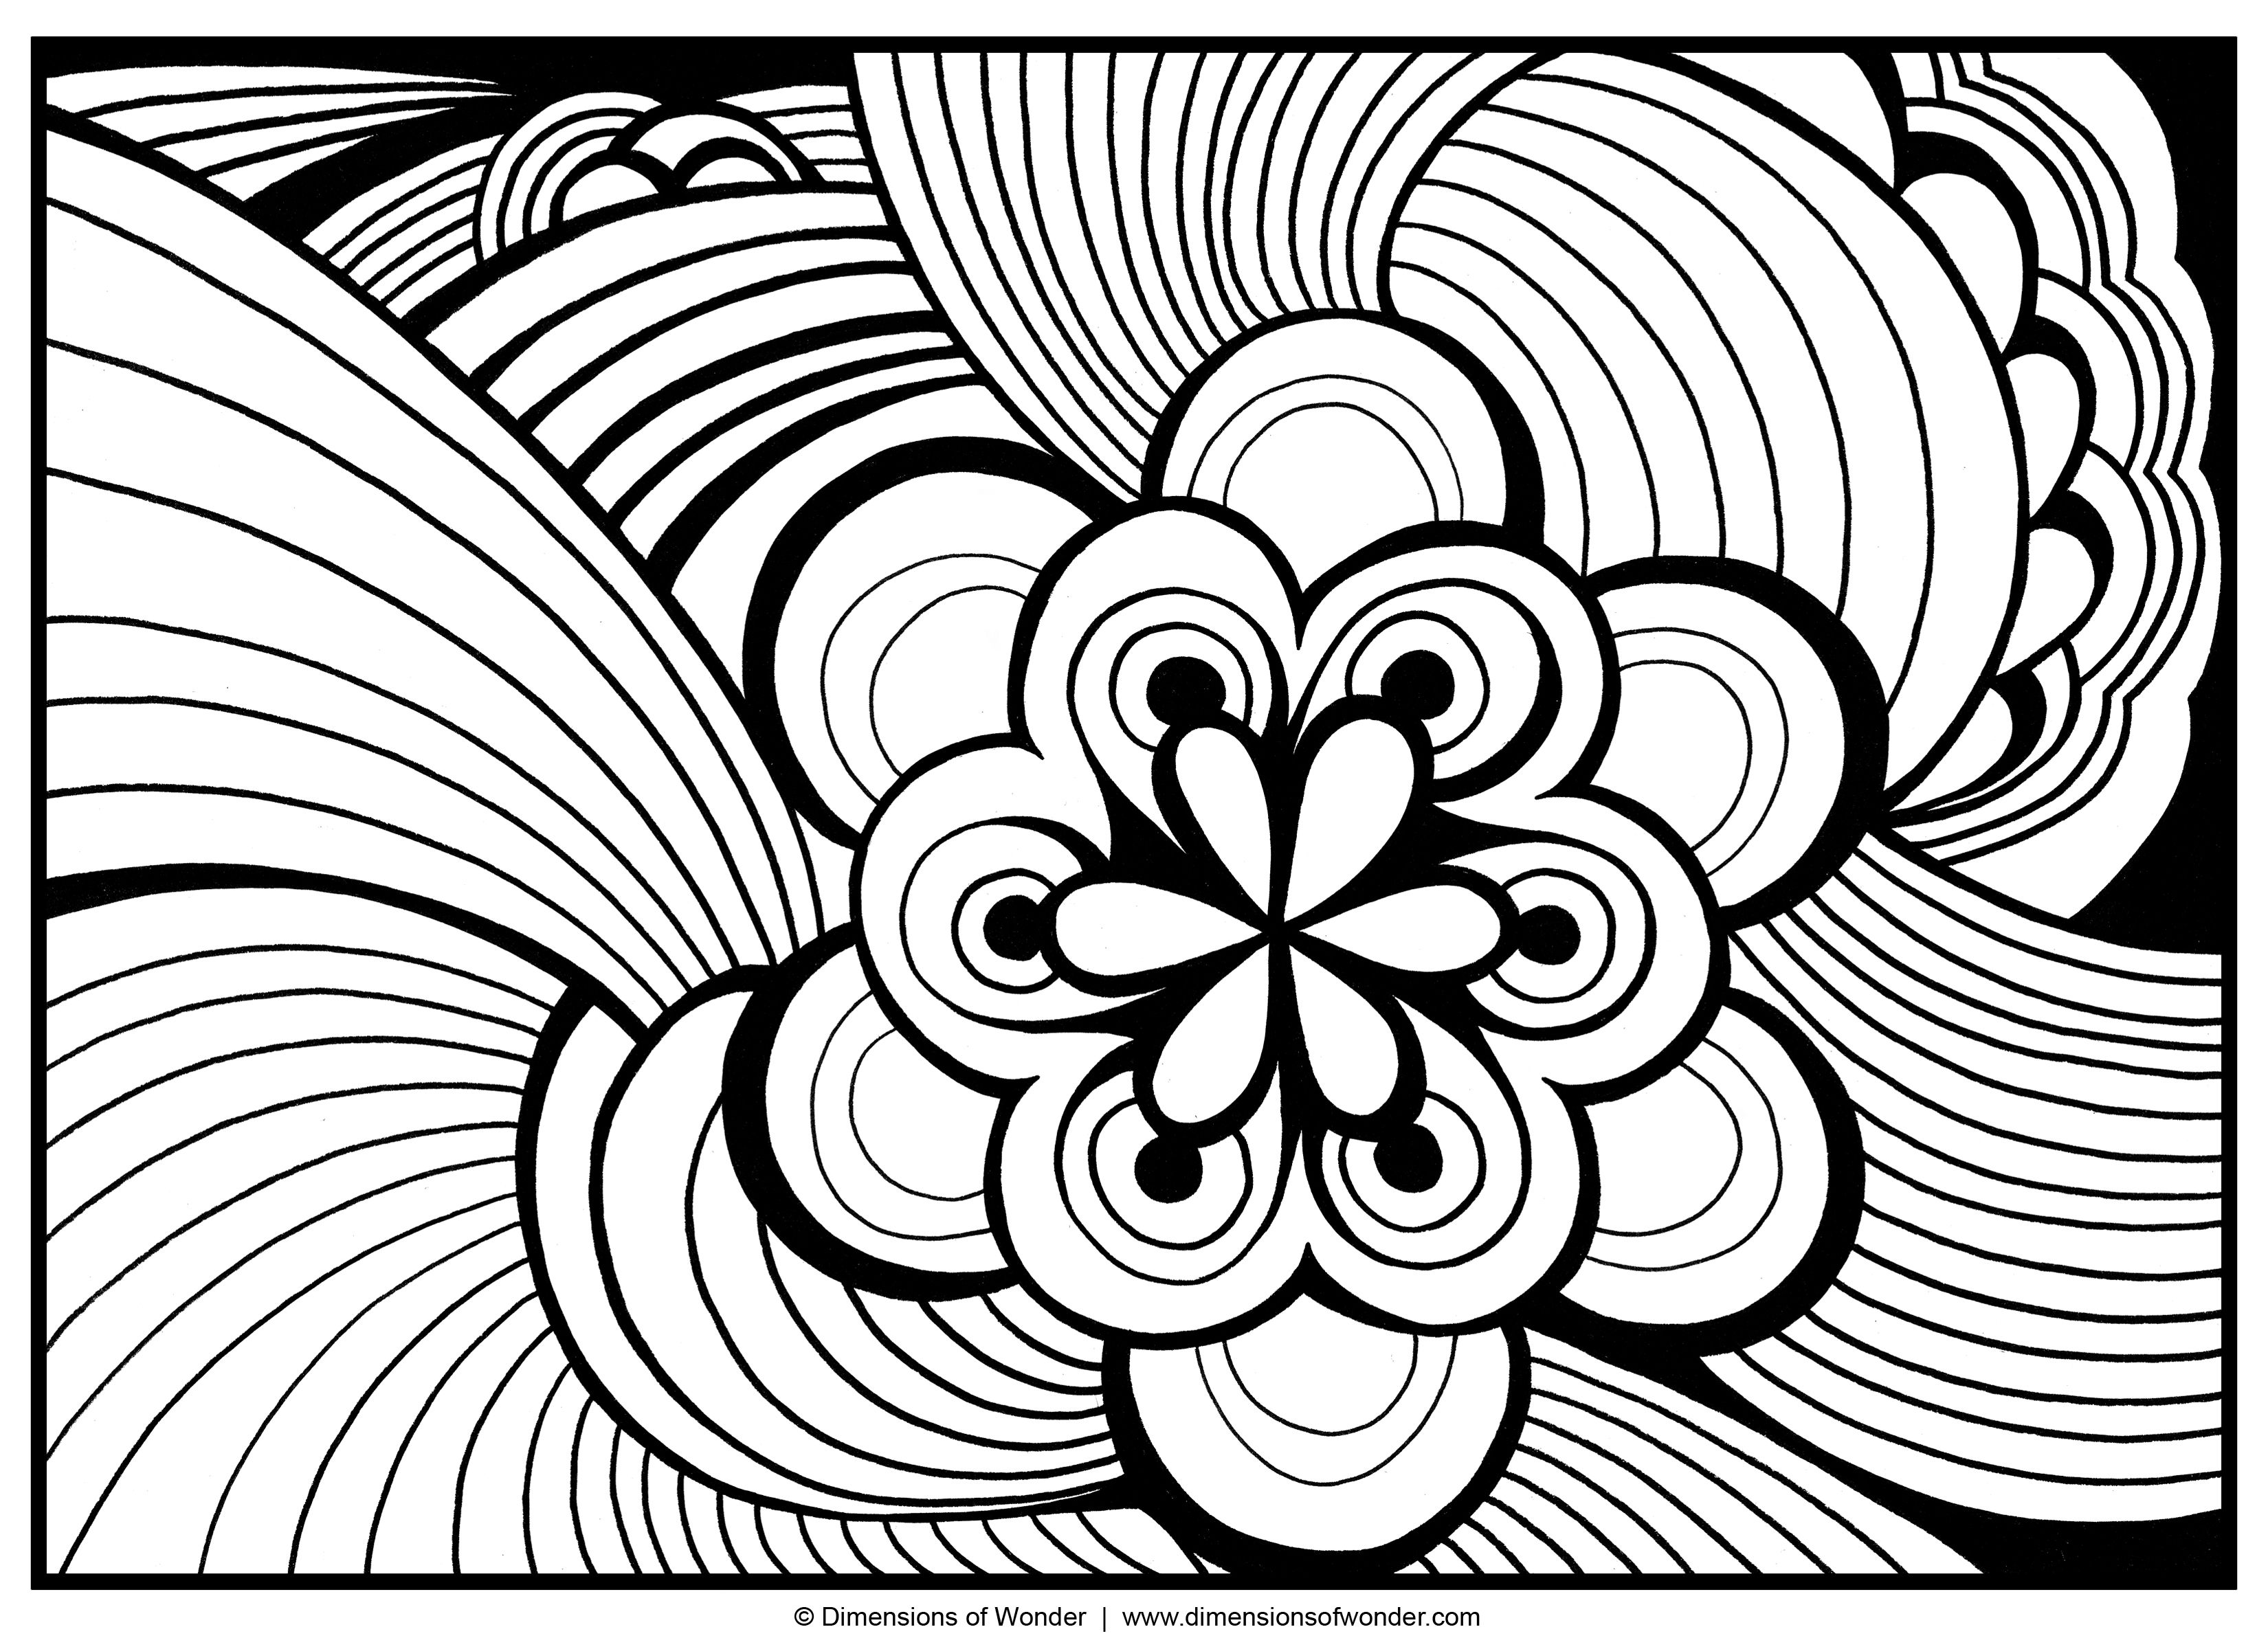 Abstract Design Coloring Pages - Coloring Page